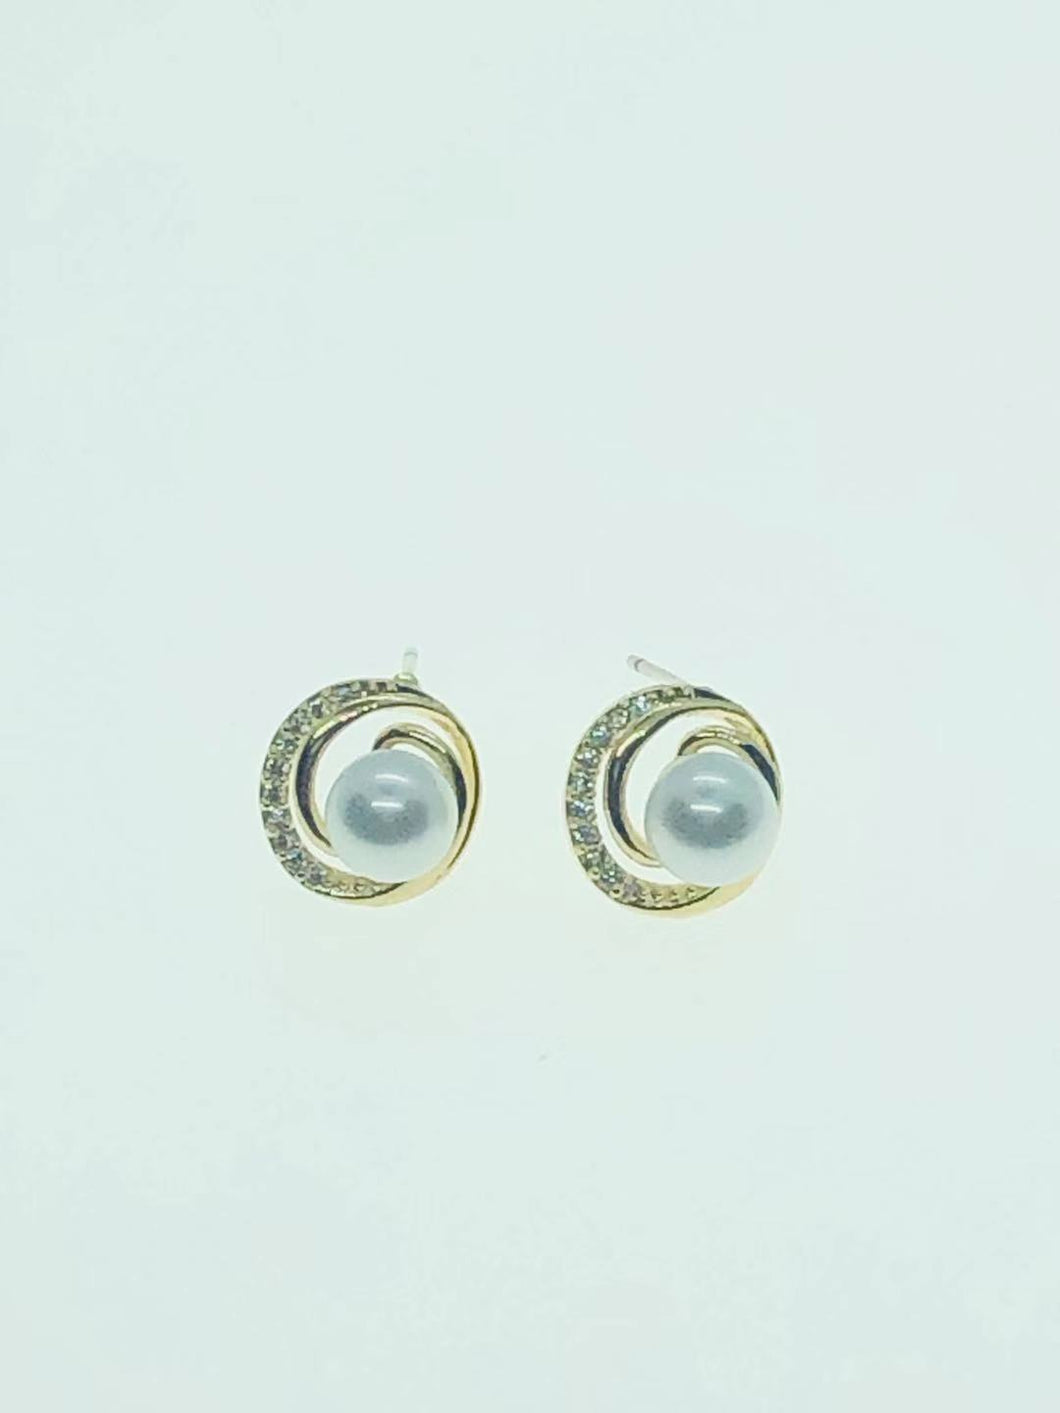 22-JM-JA05040, Faux Pearl in Circle Earring